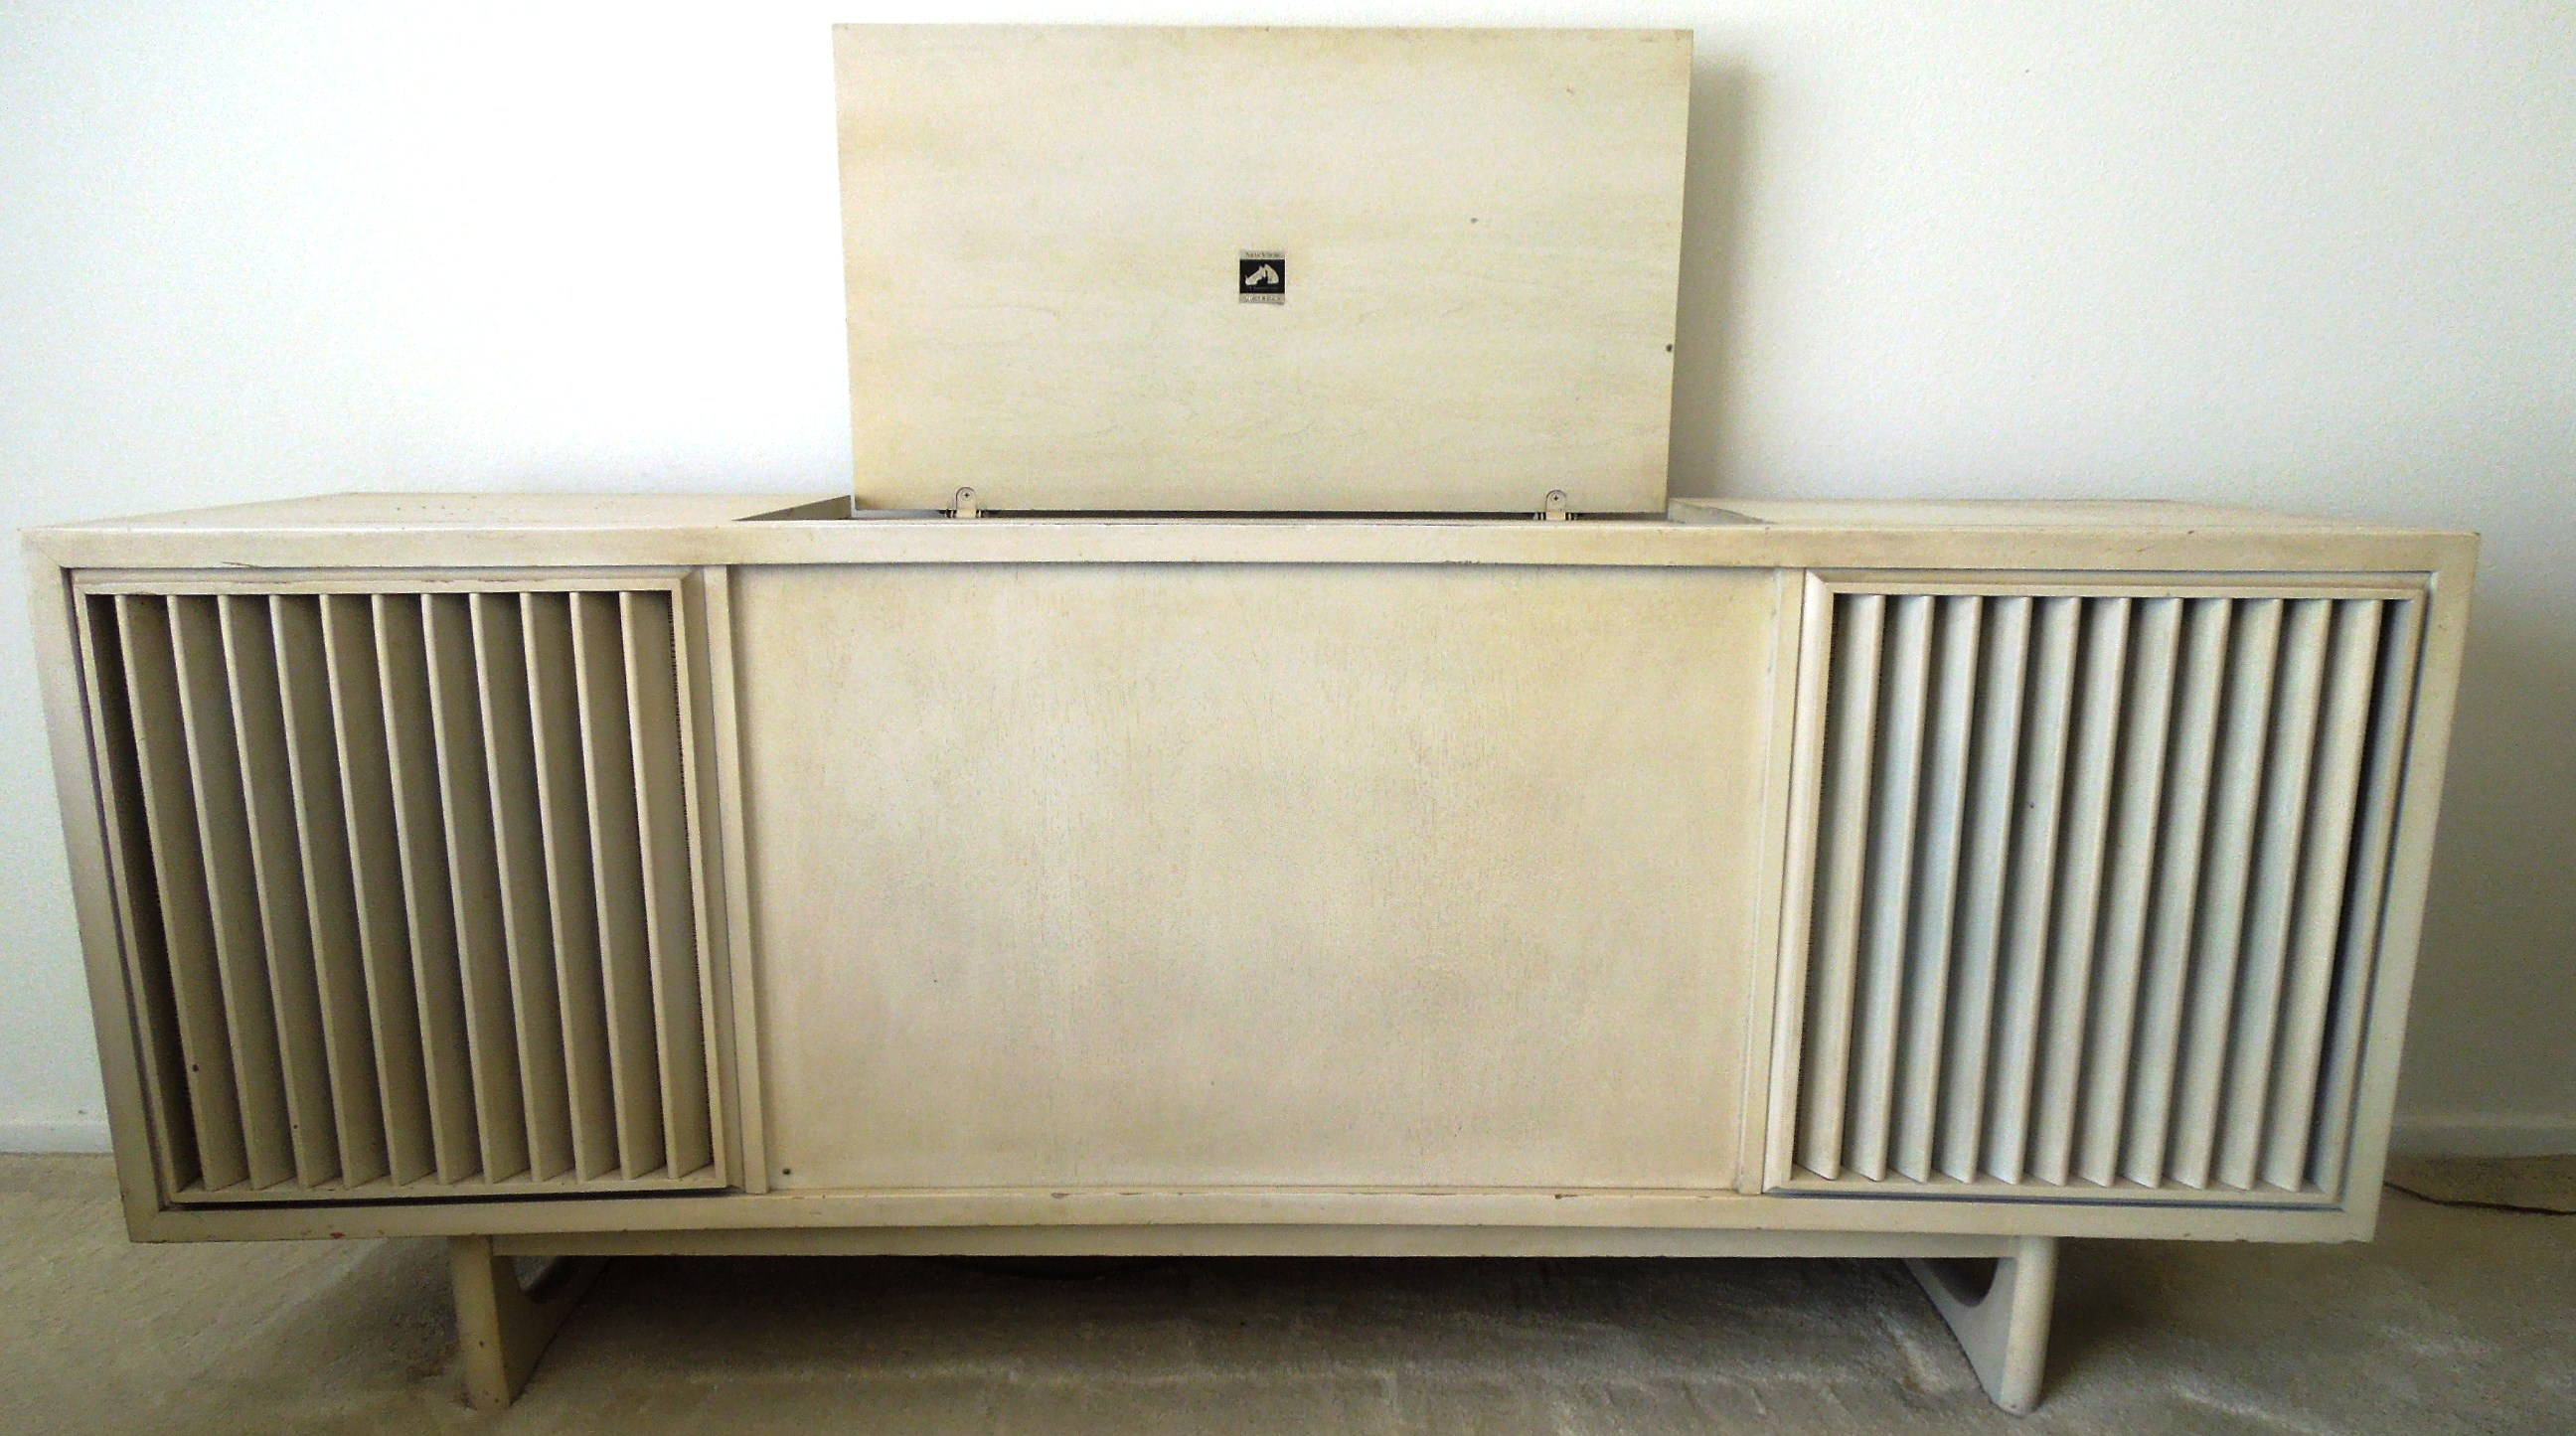 1960s Vintage RCA Victrola AM/FM Stereo and Turntable Console For